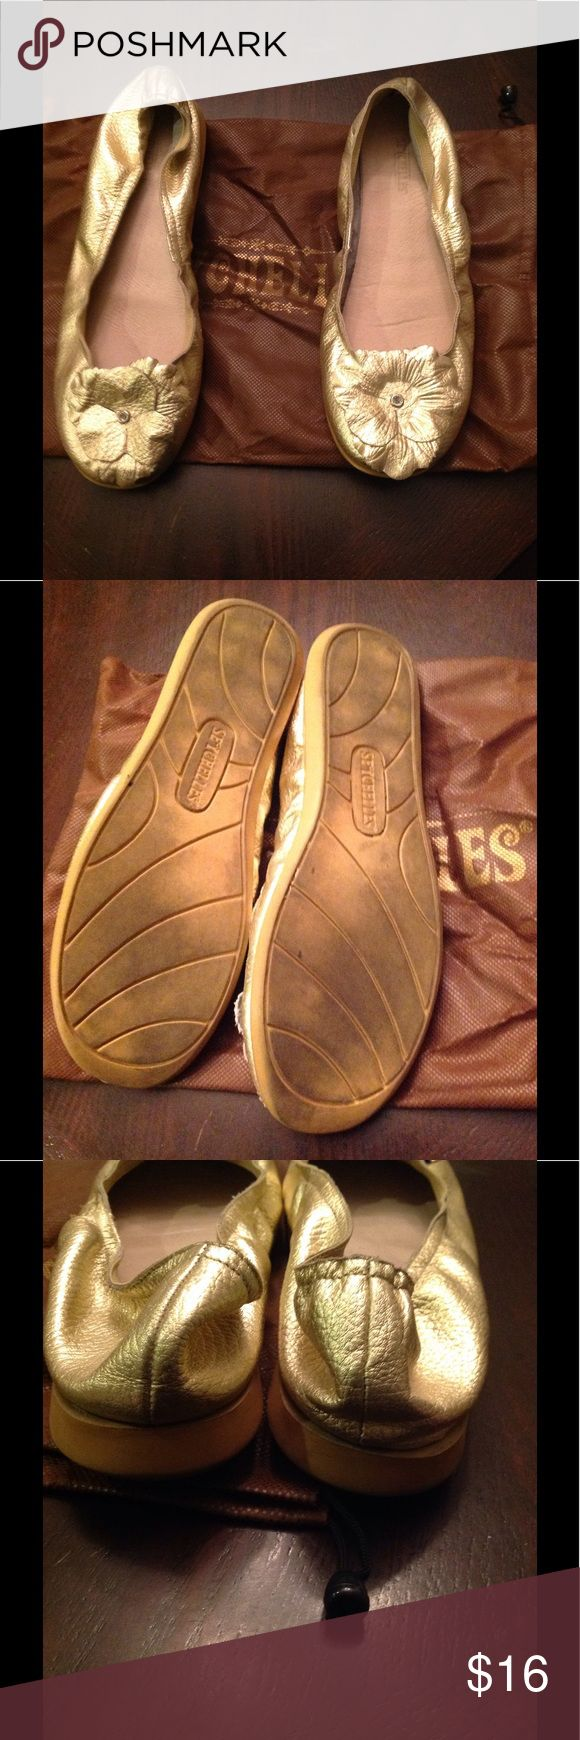 SEYCHELLES GOLD LEATHER FLATS SEYCHELLES GOLD LEATHER FLATS SIZE 9 COMES WITH DUST BAG Seychelles Shoes Flats & Loafers